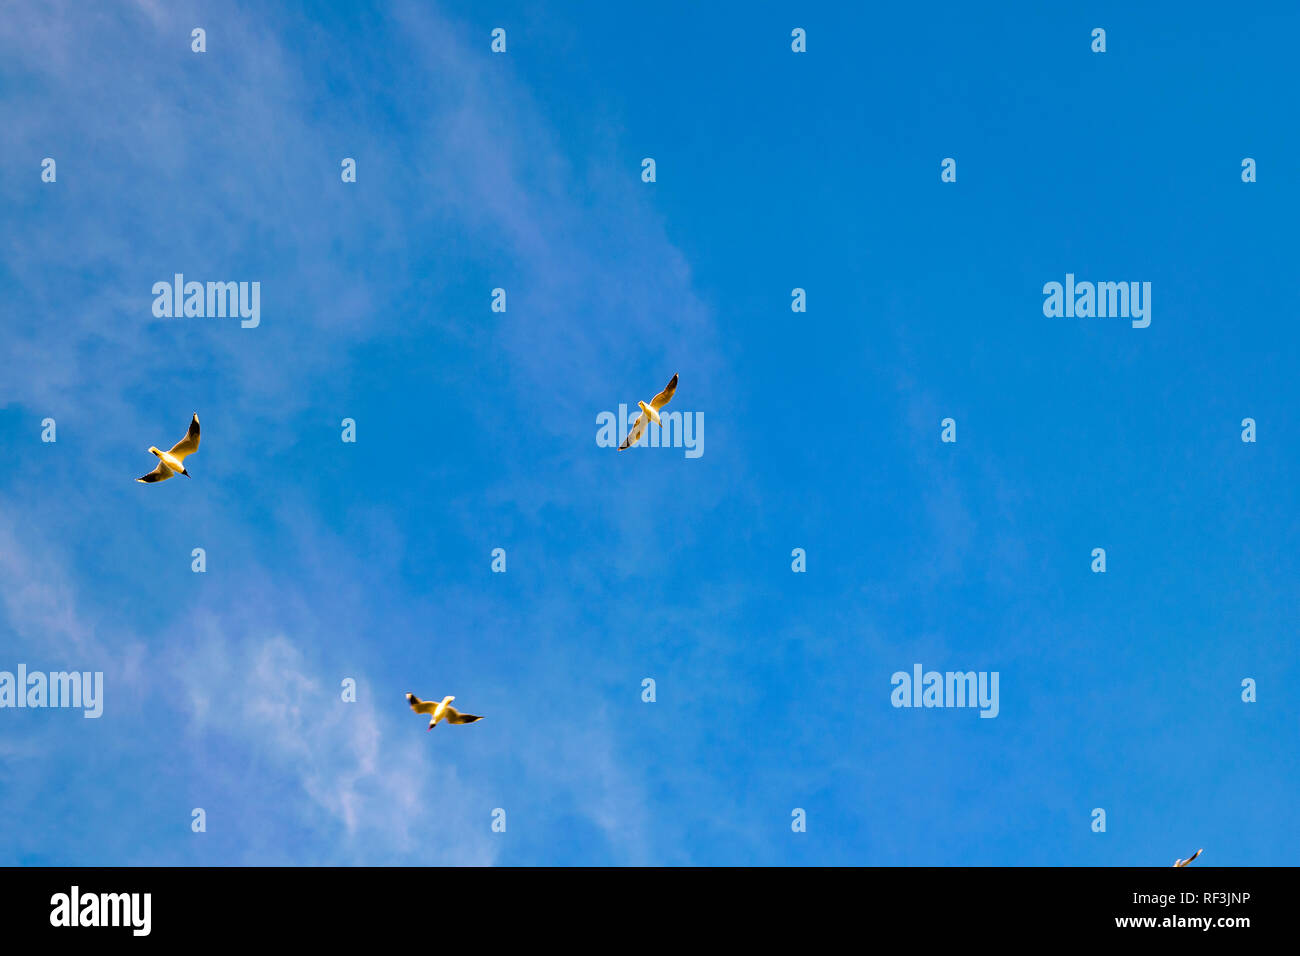 Three birds flying over clean blue sky background - Stock Image